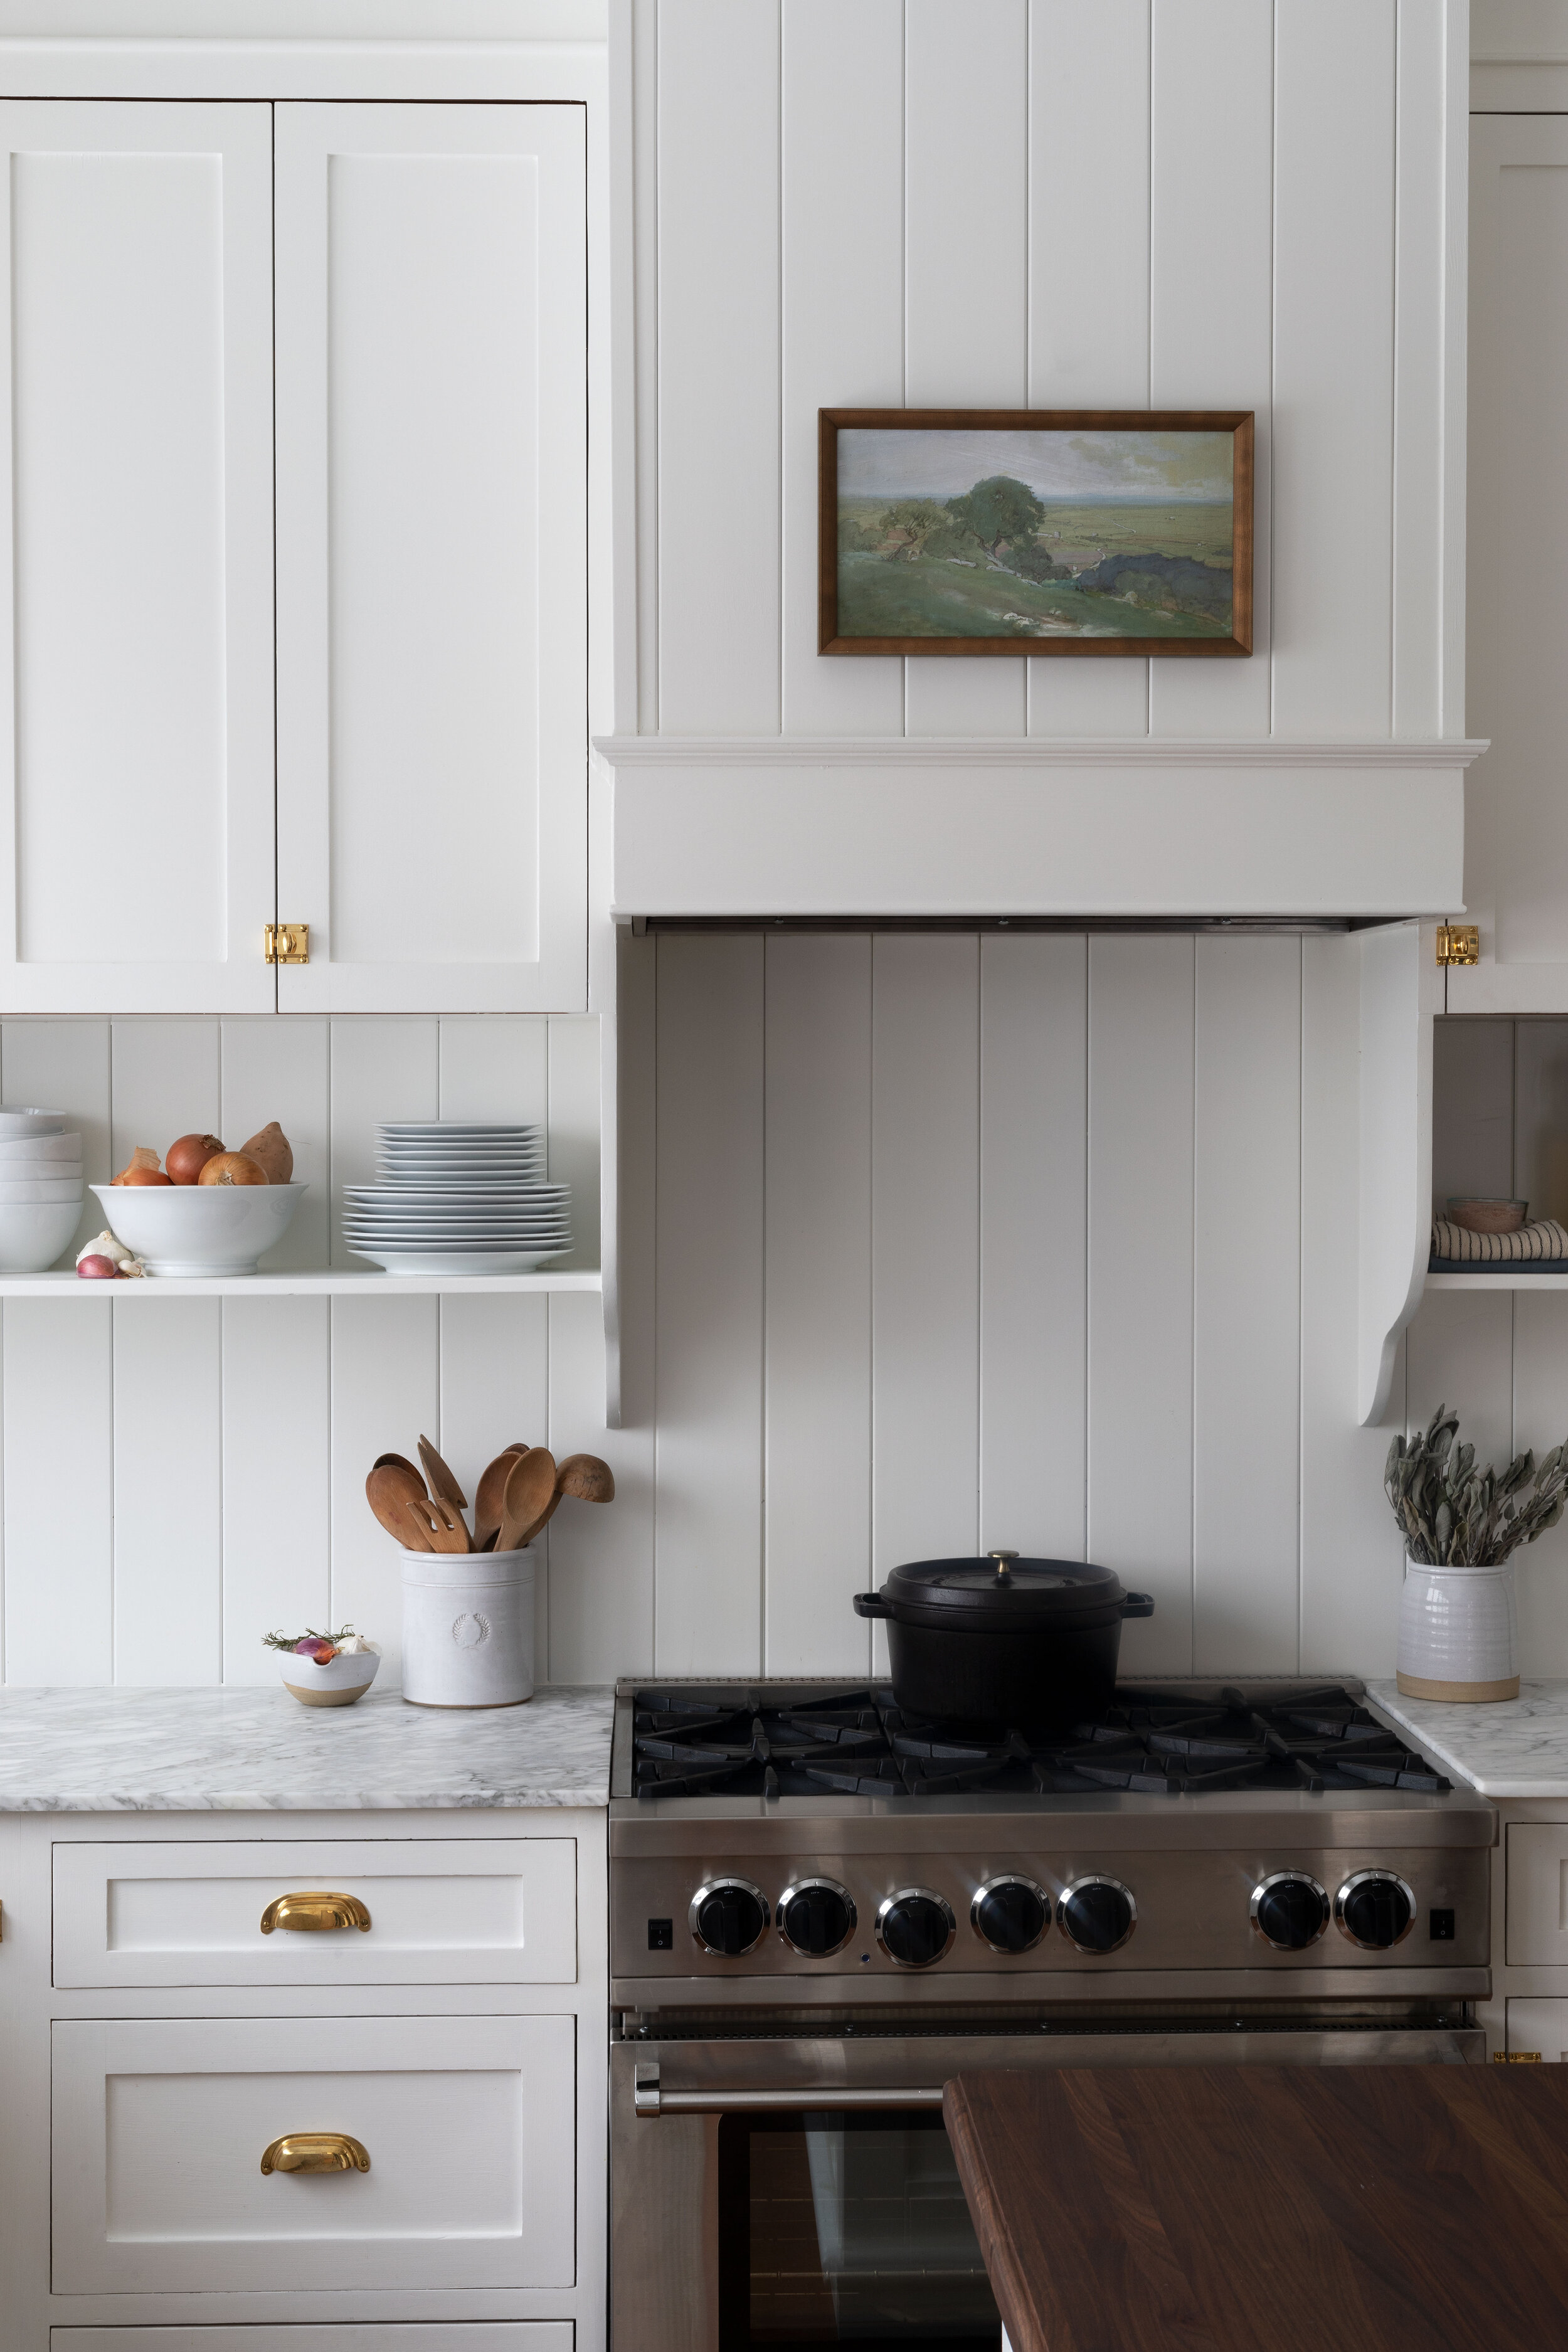 The Grit and Polish - Farmhouse Country Kitchen Reveal 3.0 19 web.jpg